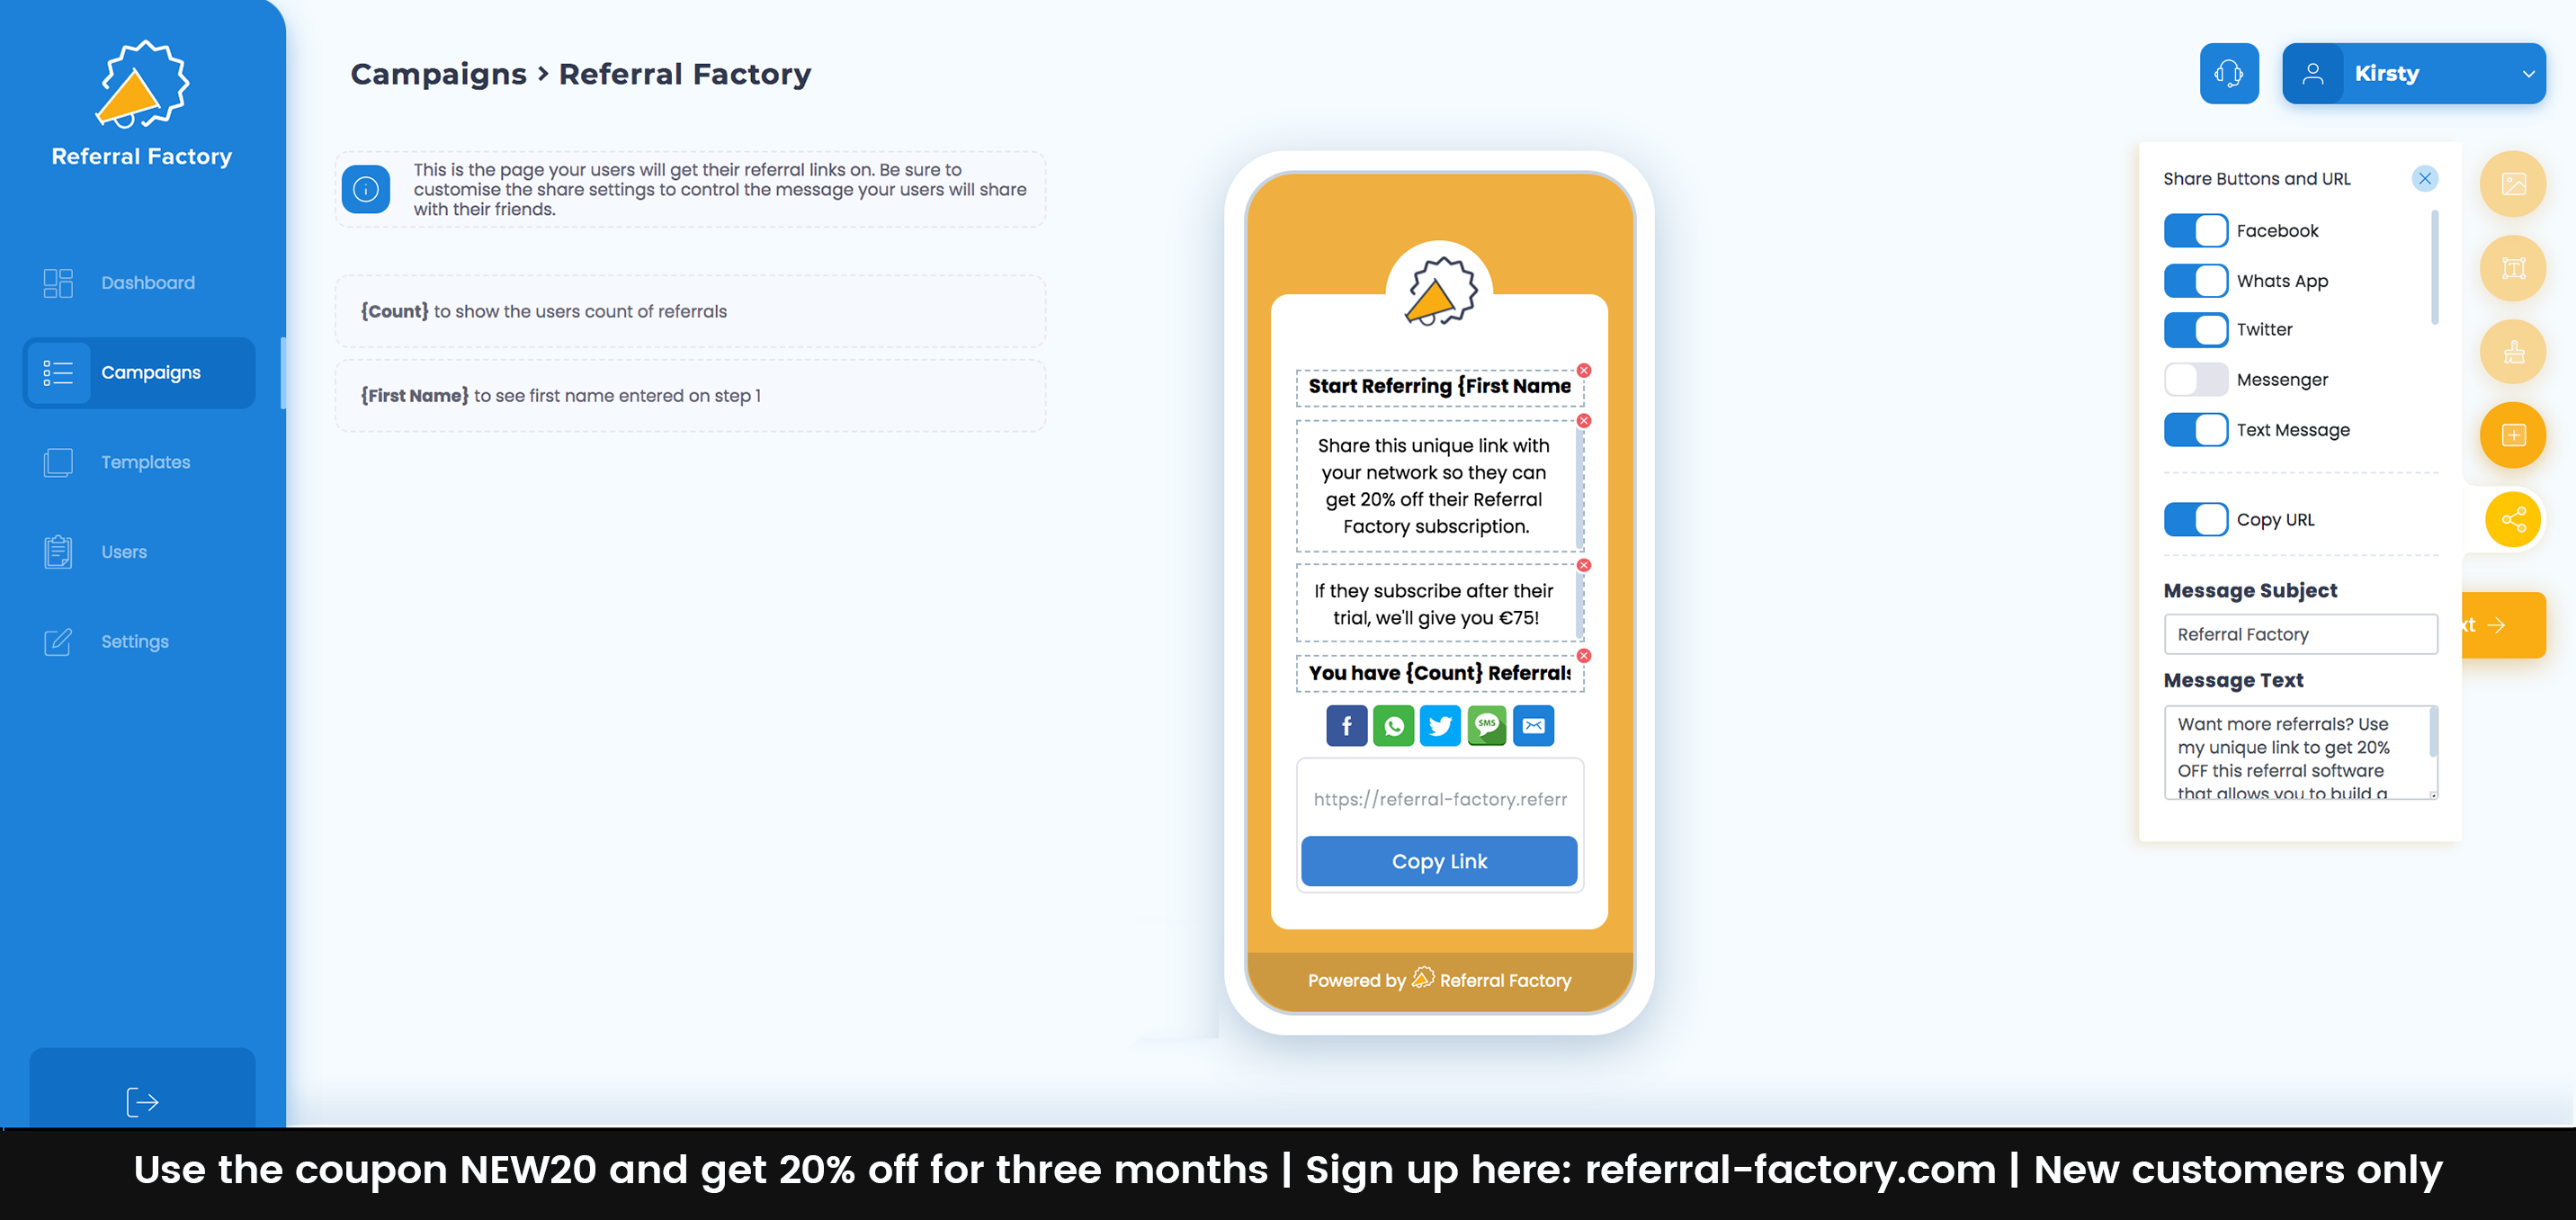 Drag And Drop Campaign Builder To Build Referral Programs